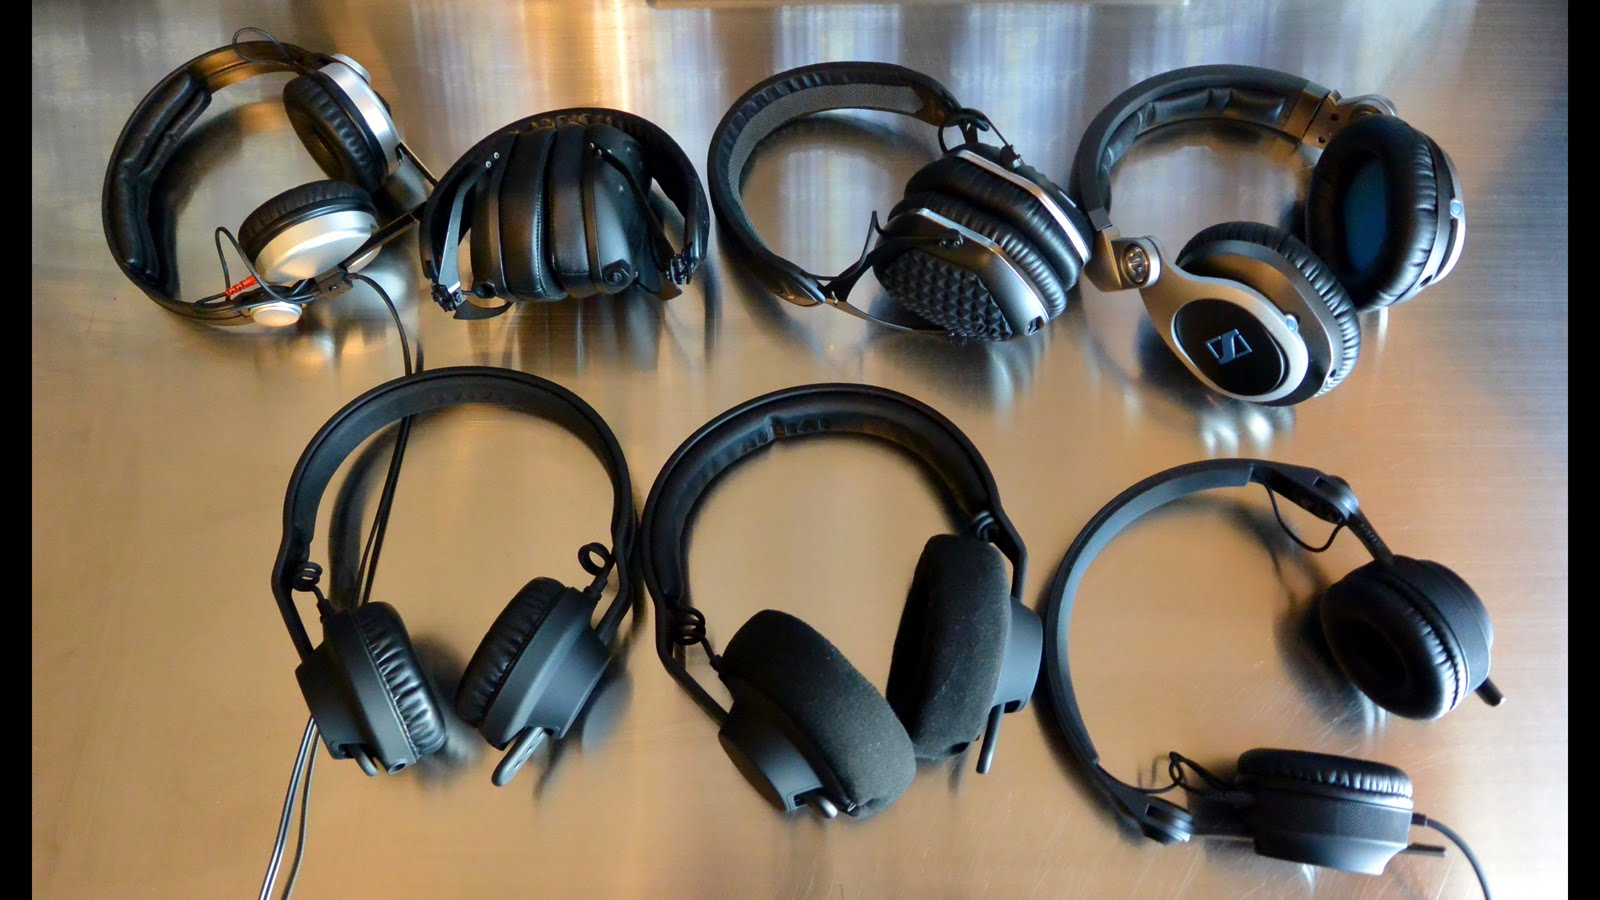 What Are The Best Noise Canceling Headphones for Studying?